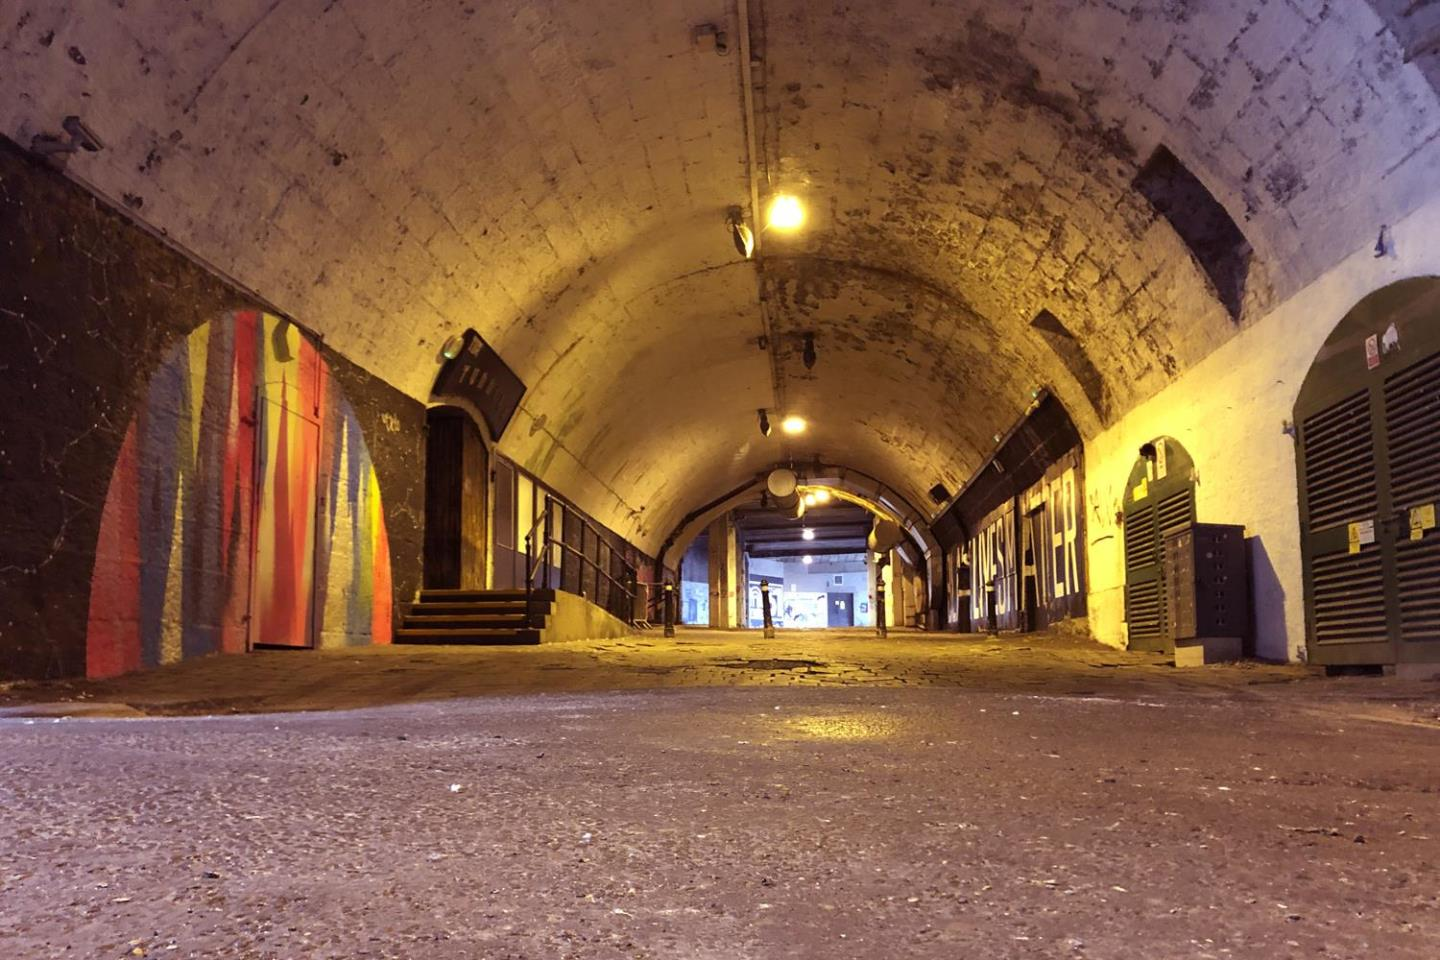 Locals are asked to help create a collaborative paste-up wall running from the East Green into the Tunnels.